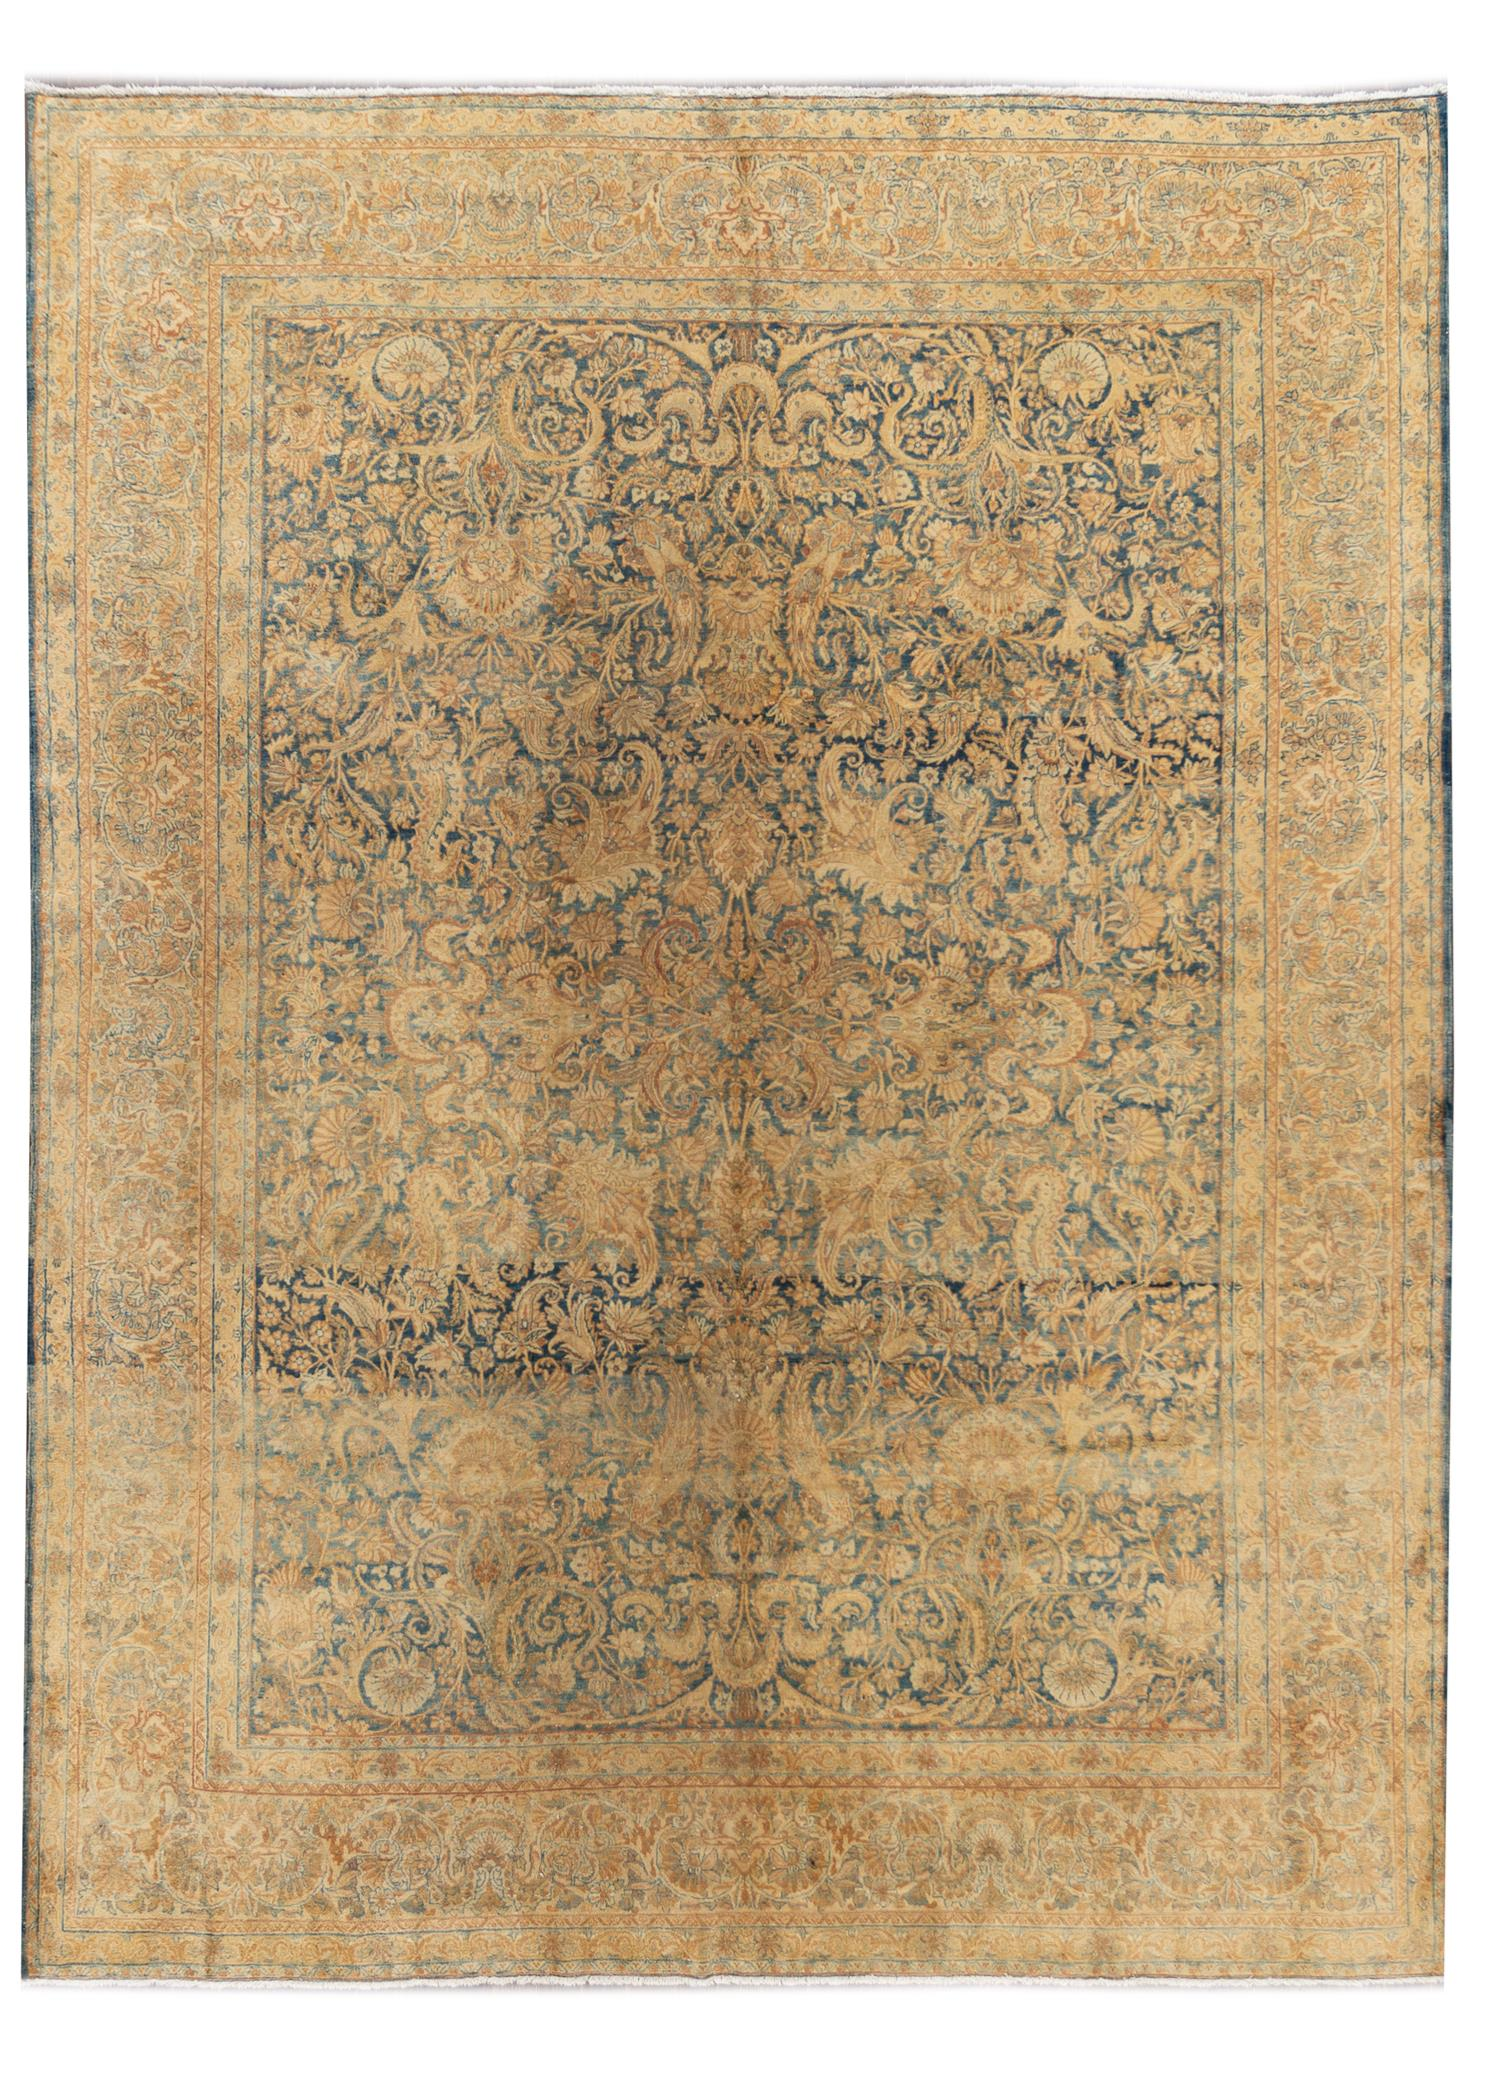 Early 20th Century Antique Kerman Rug, 9x11